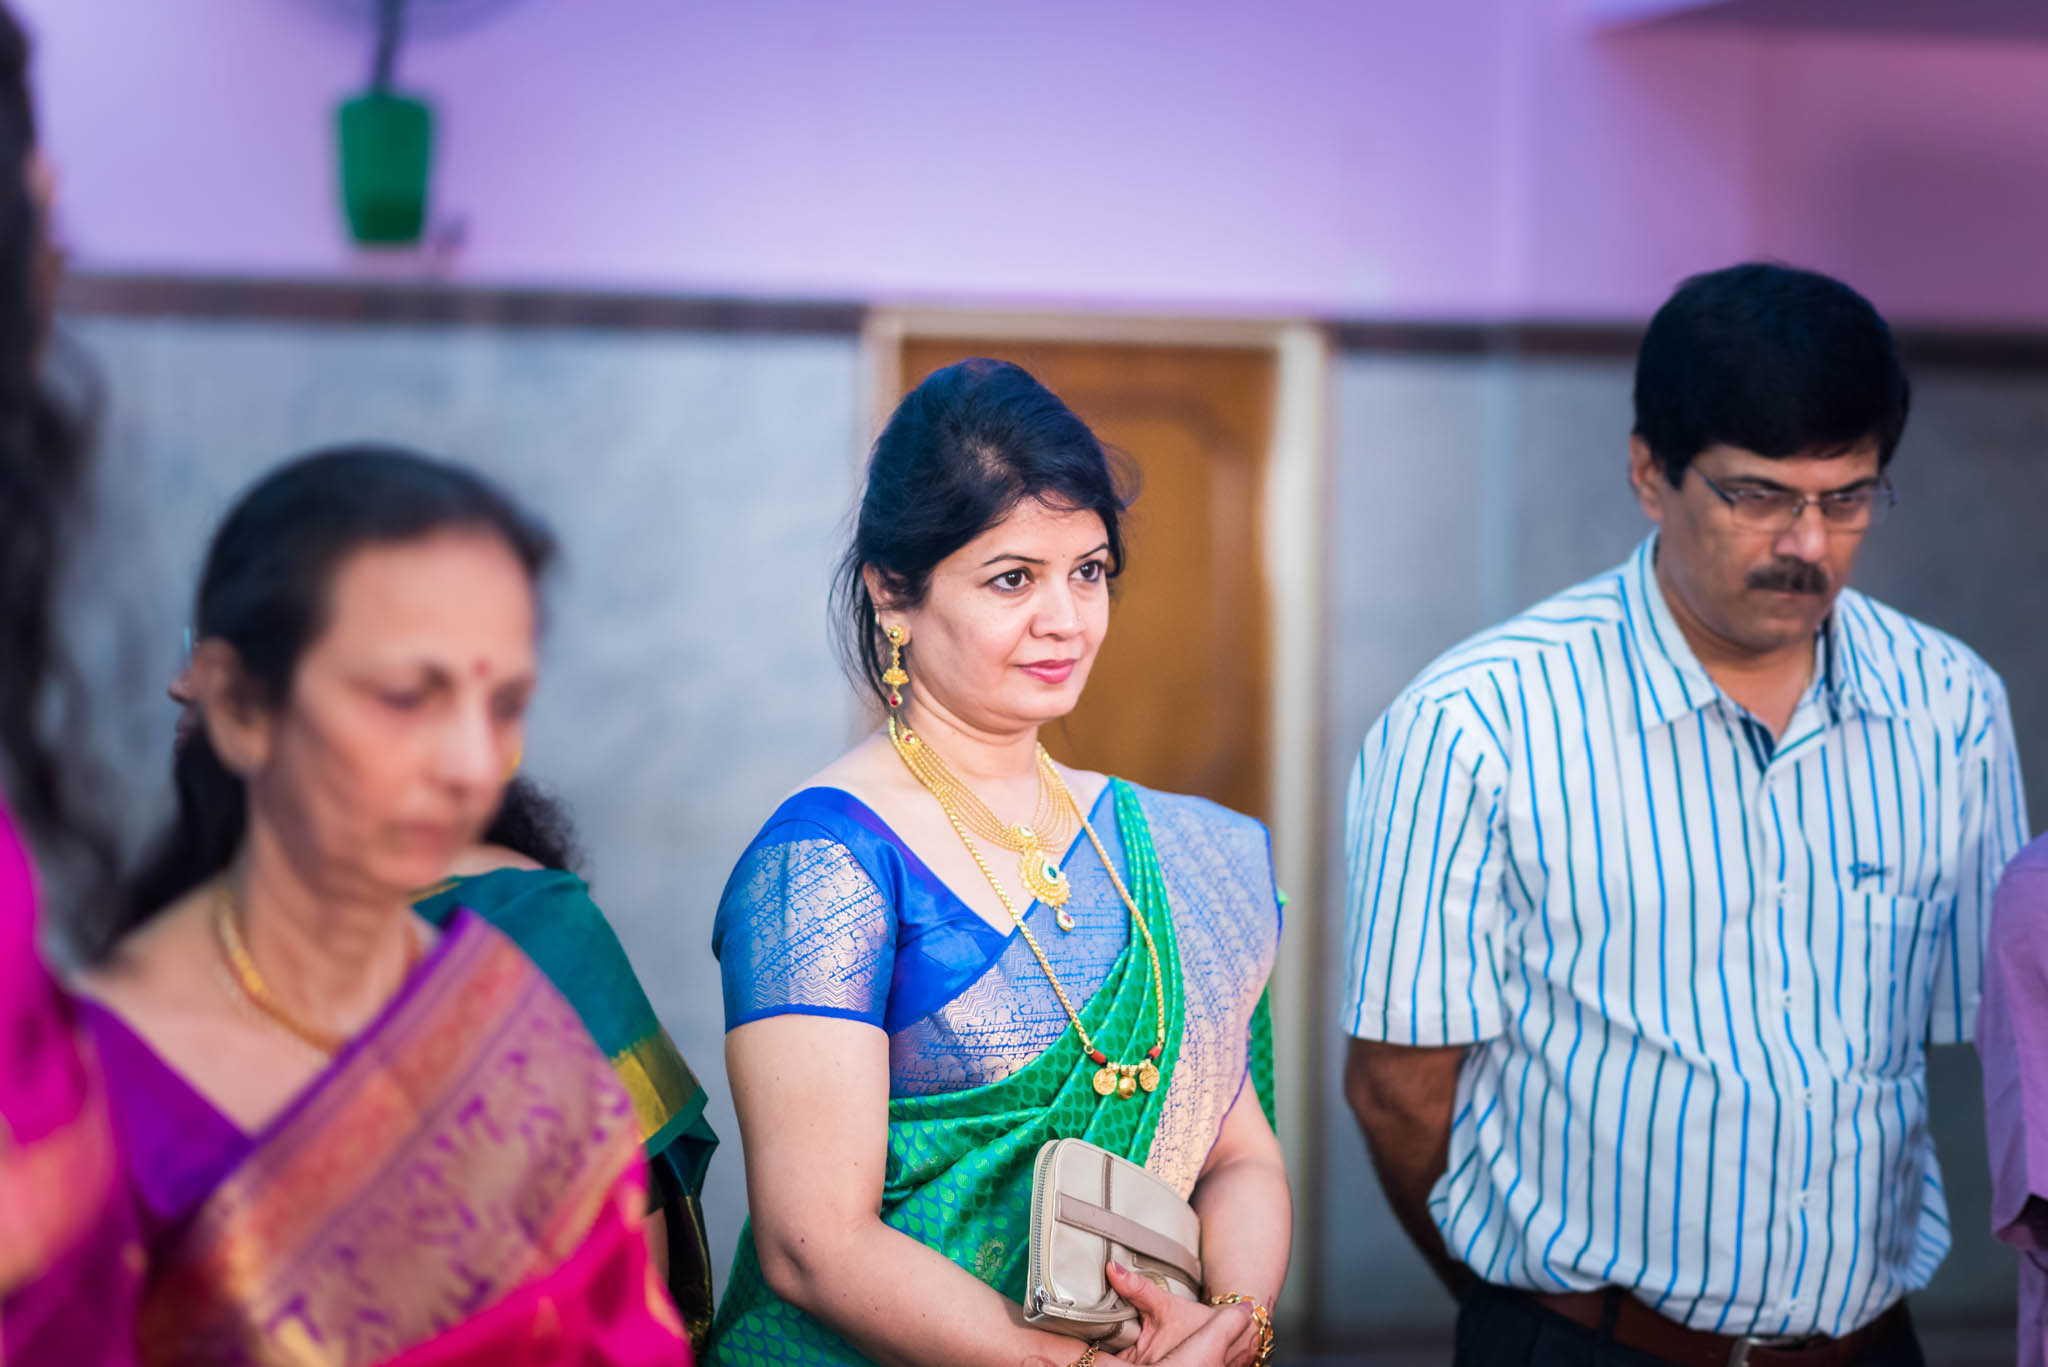 WhatKnot-Candid-Wedding-Photography-Mumbai-Bangalore-250